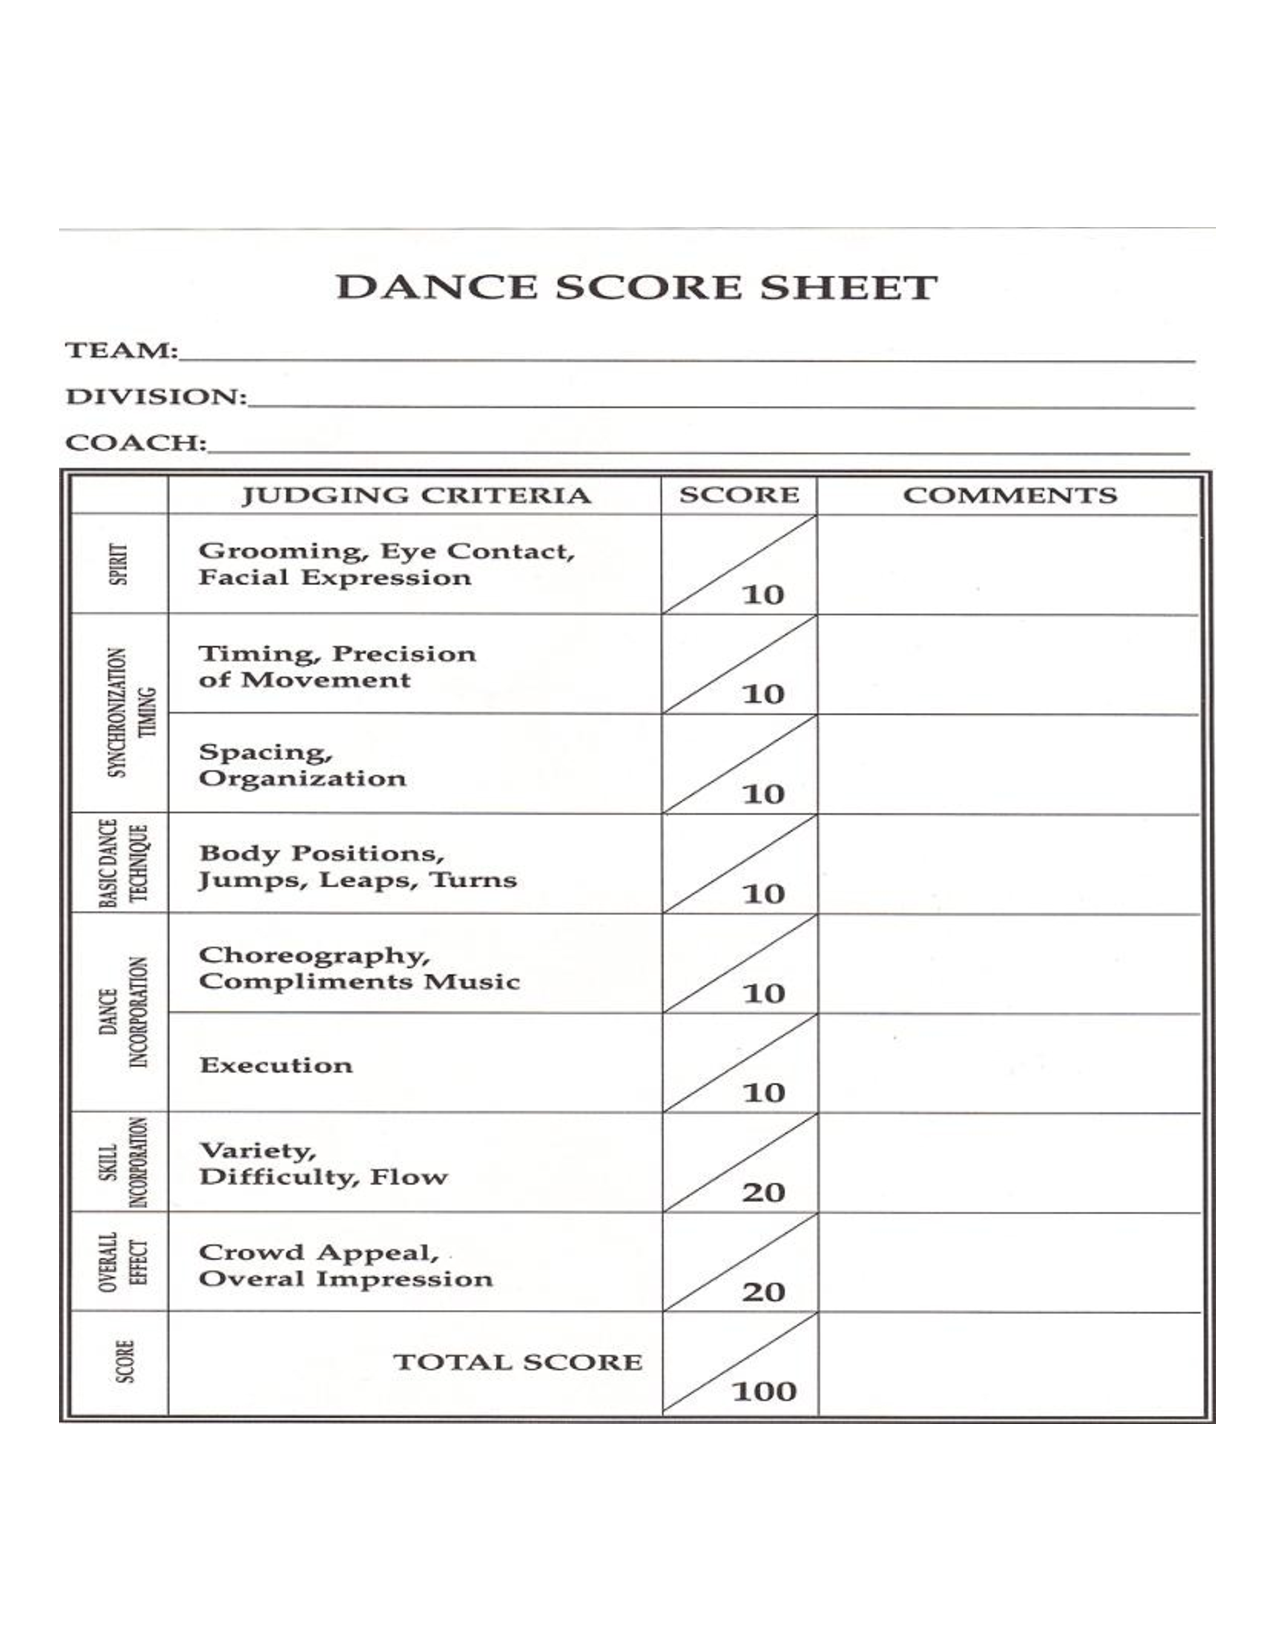 Gbdc Dance Score Sheet